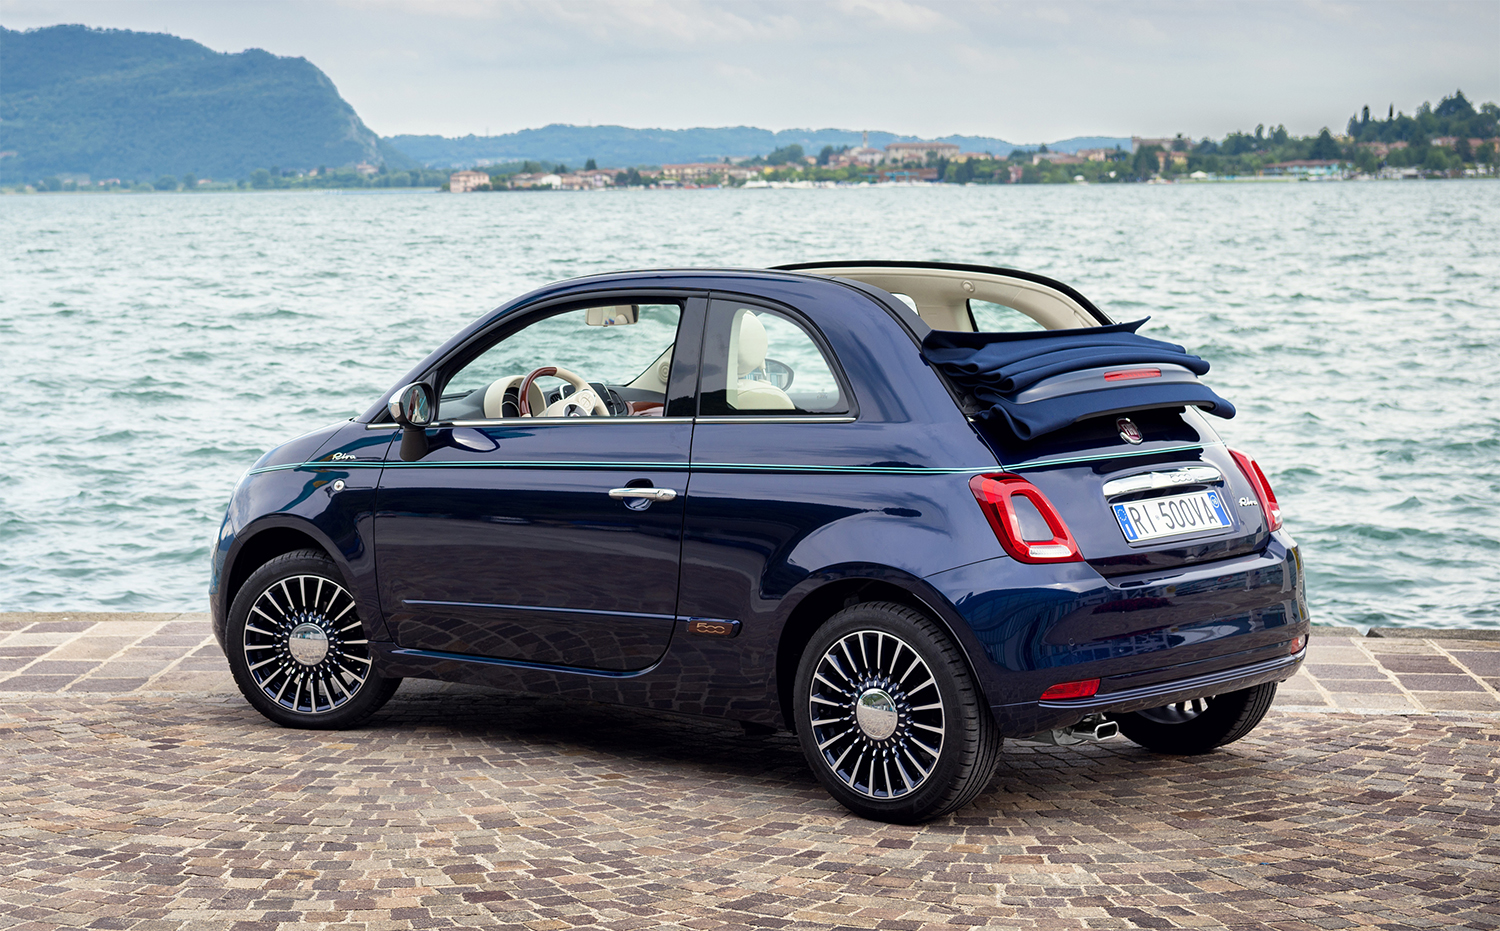 fiat 500 cabriolet with 5 Petits Cabriolets Pour Lete on Quelle Fiat 500 Restylee Choisir 105377 as well Fiat 600d Engine Parts furthermore 7209 No Wheel Covers Year I Like moreover Fiat500pickup furthermore respond.